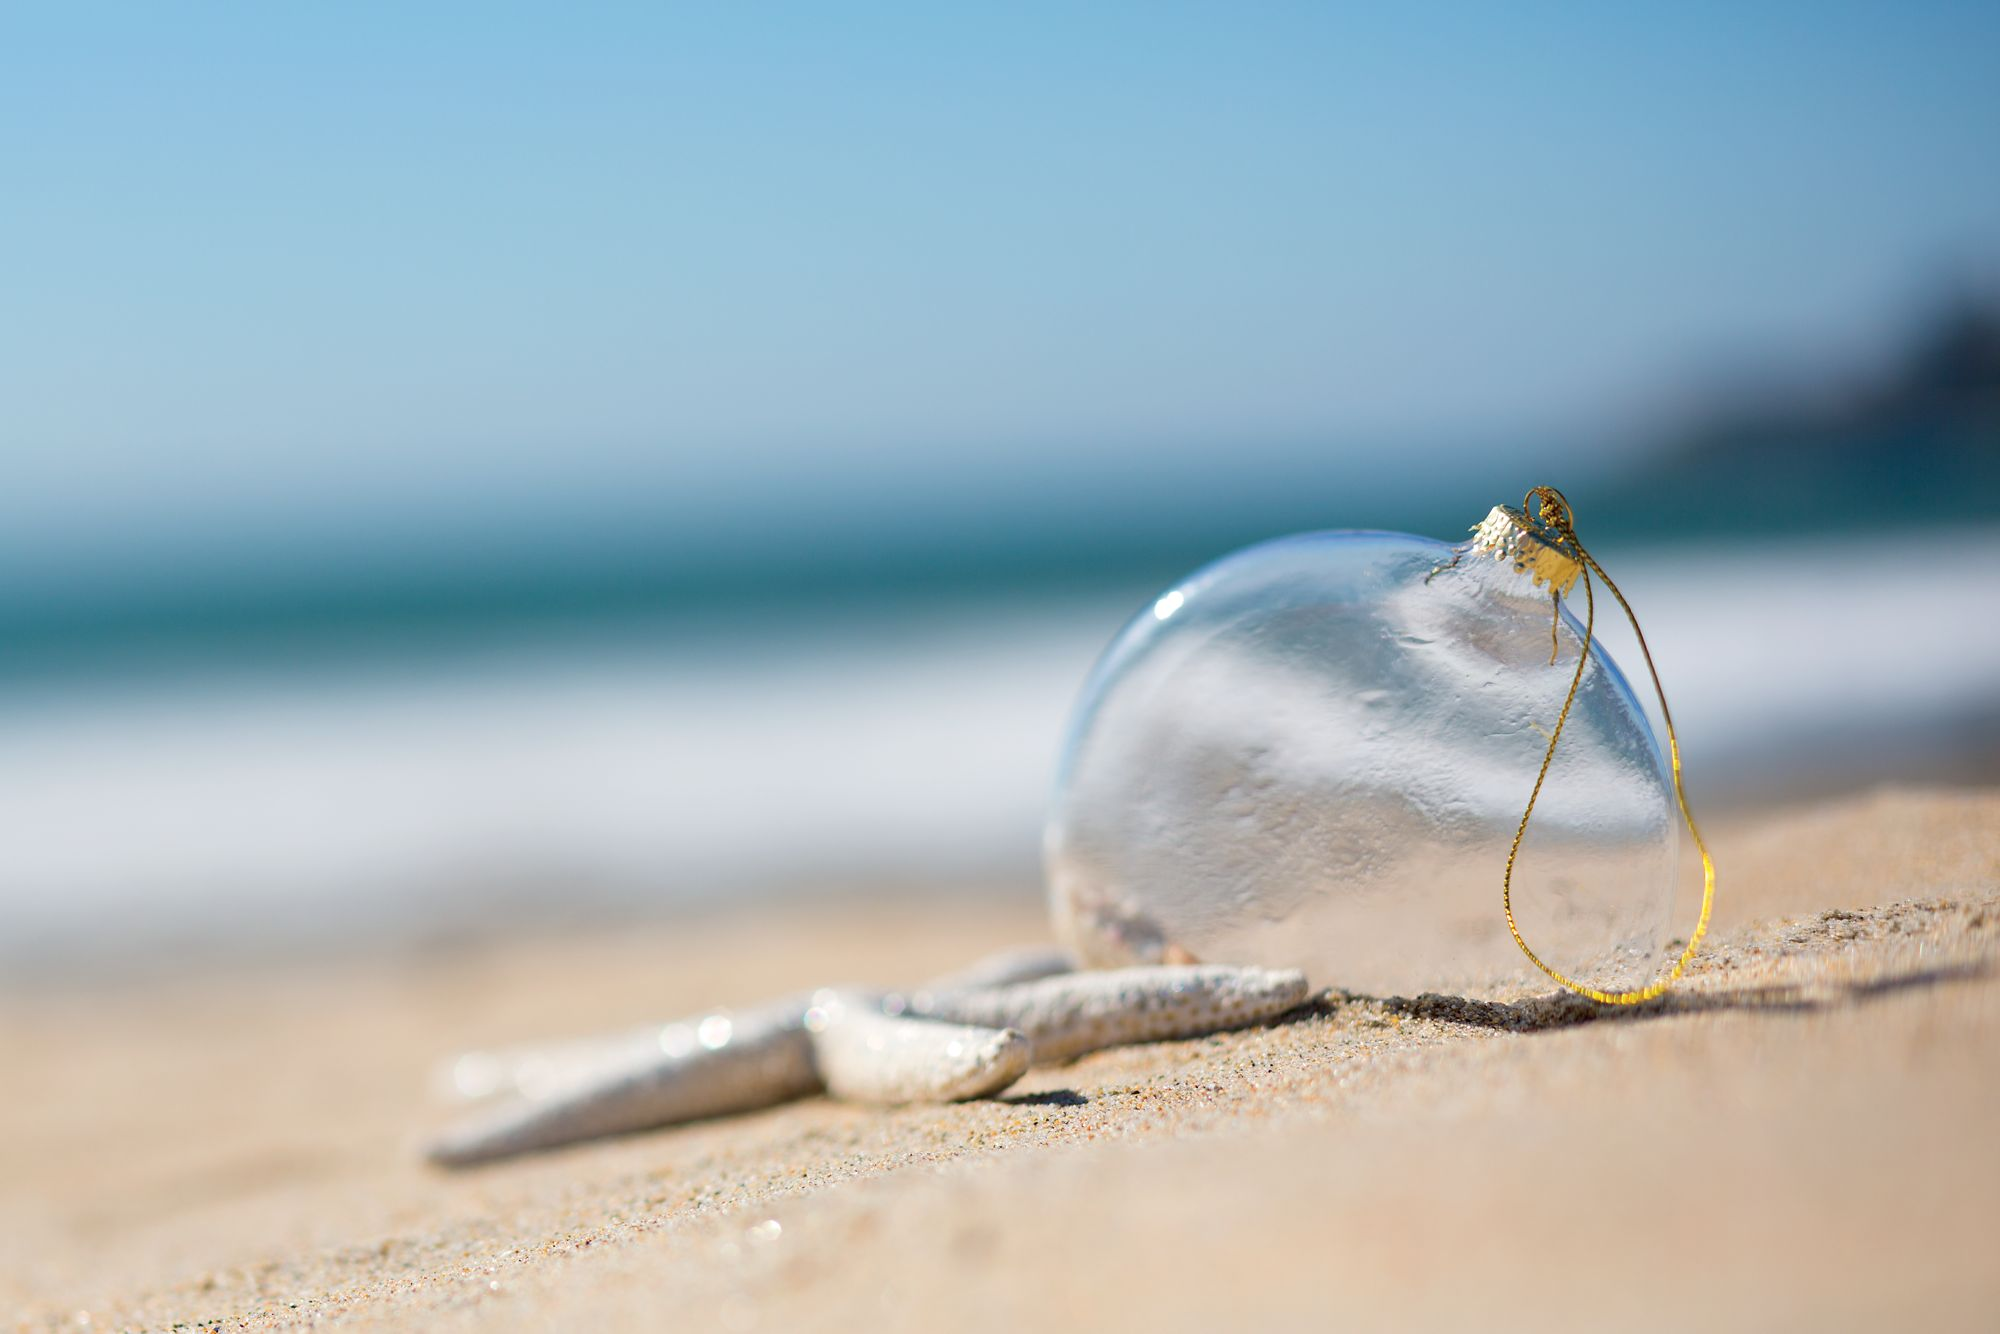 A glass ball in the sand